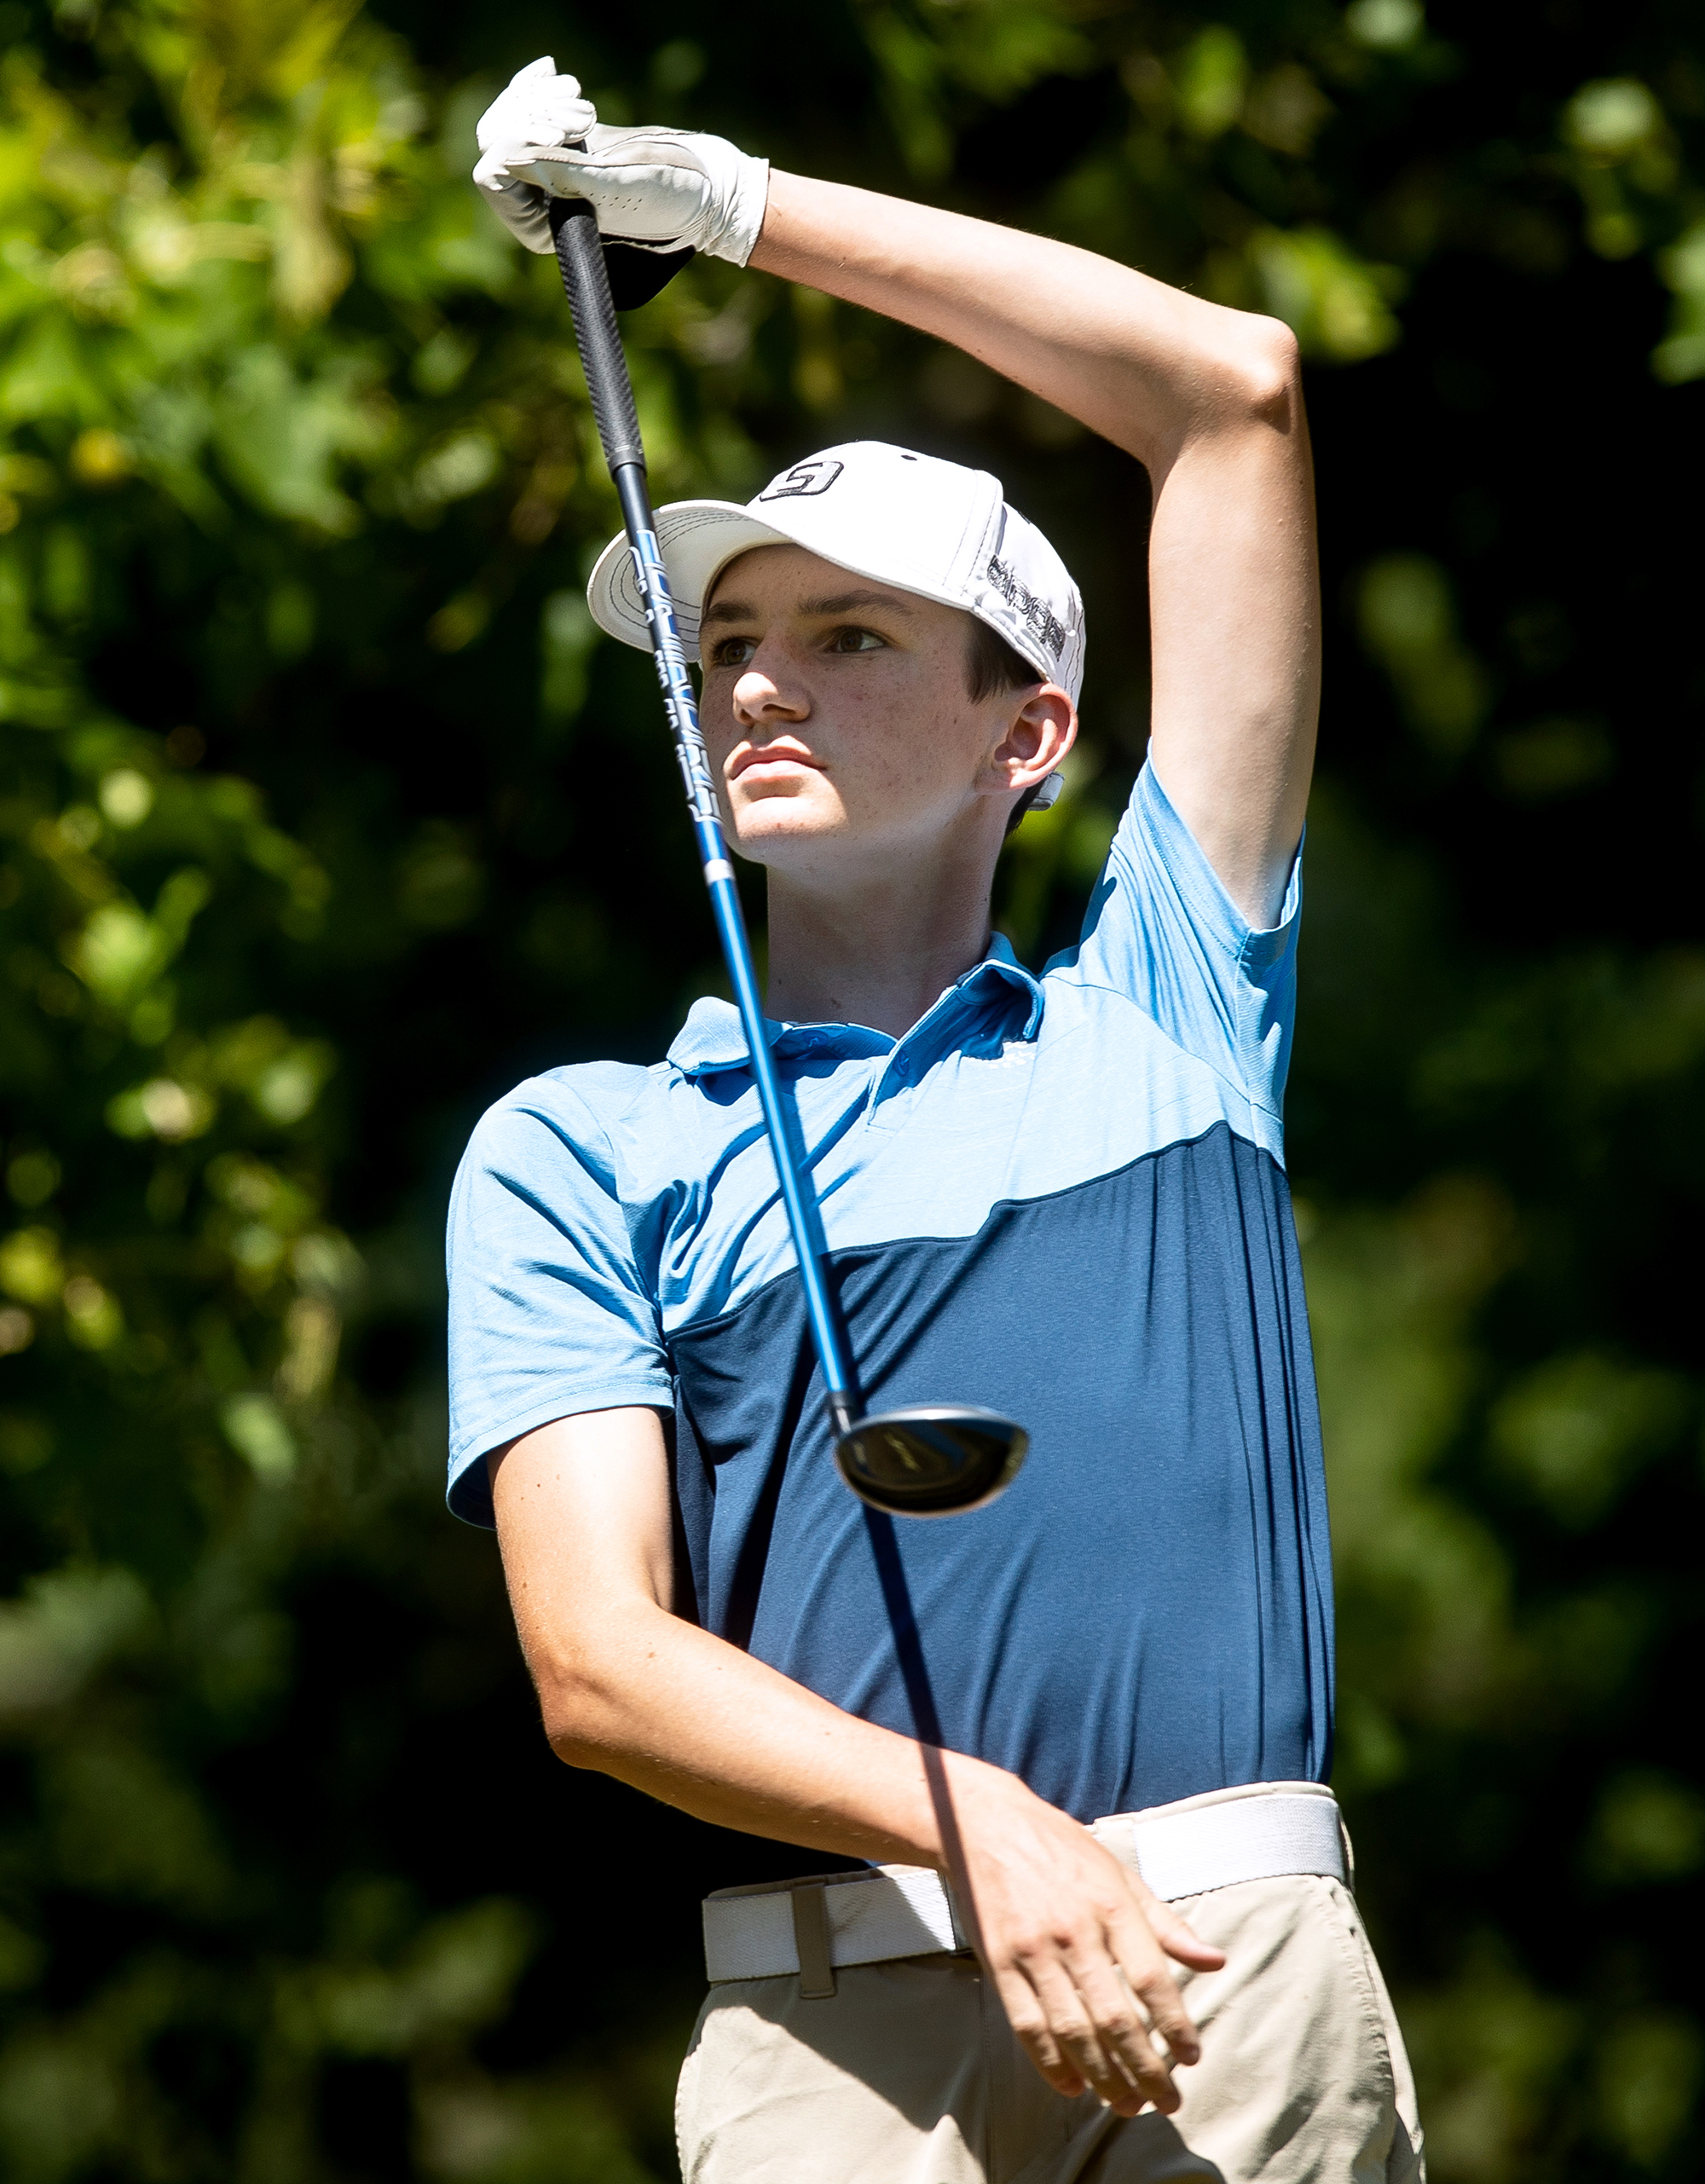 Cole Bartels watches his drive shot from the No. 9 tee in the boys 14-15 championship flight semifinal of the Drysdale Junior Golf Tournament Wednesday, July 11, 2018 at Bunn Golf Course in Springfield, Ill. [Rich Saal/The State Journal-Register]